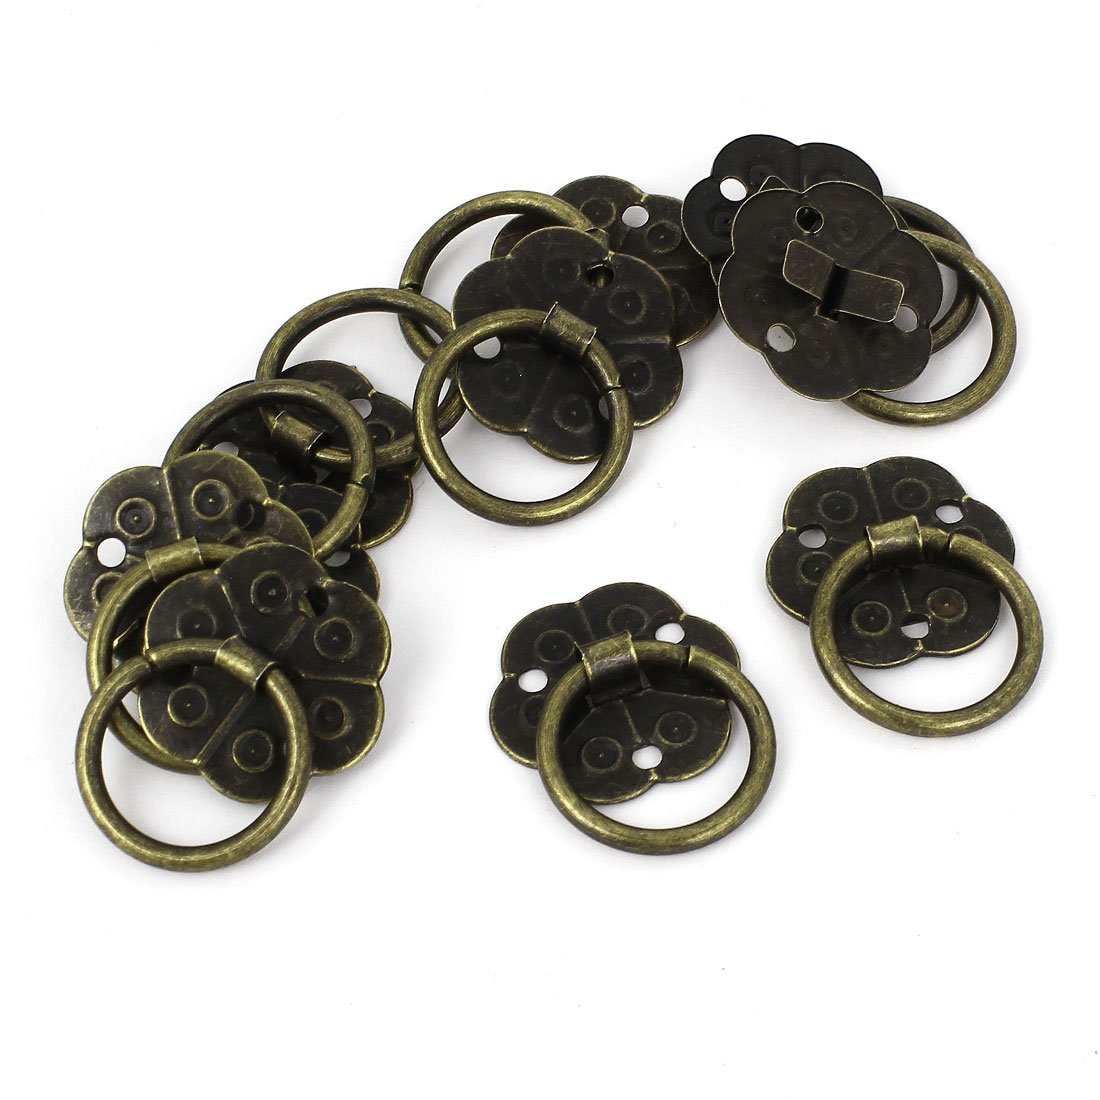 10pcs Home Jewelry Box Cabinet Door Pull Handle Ring